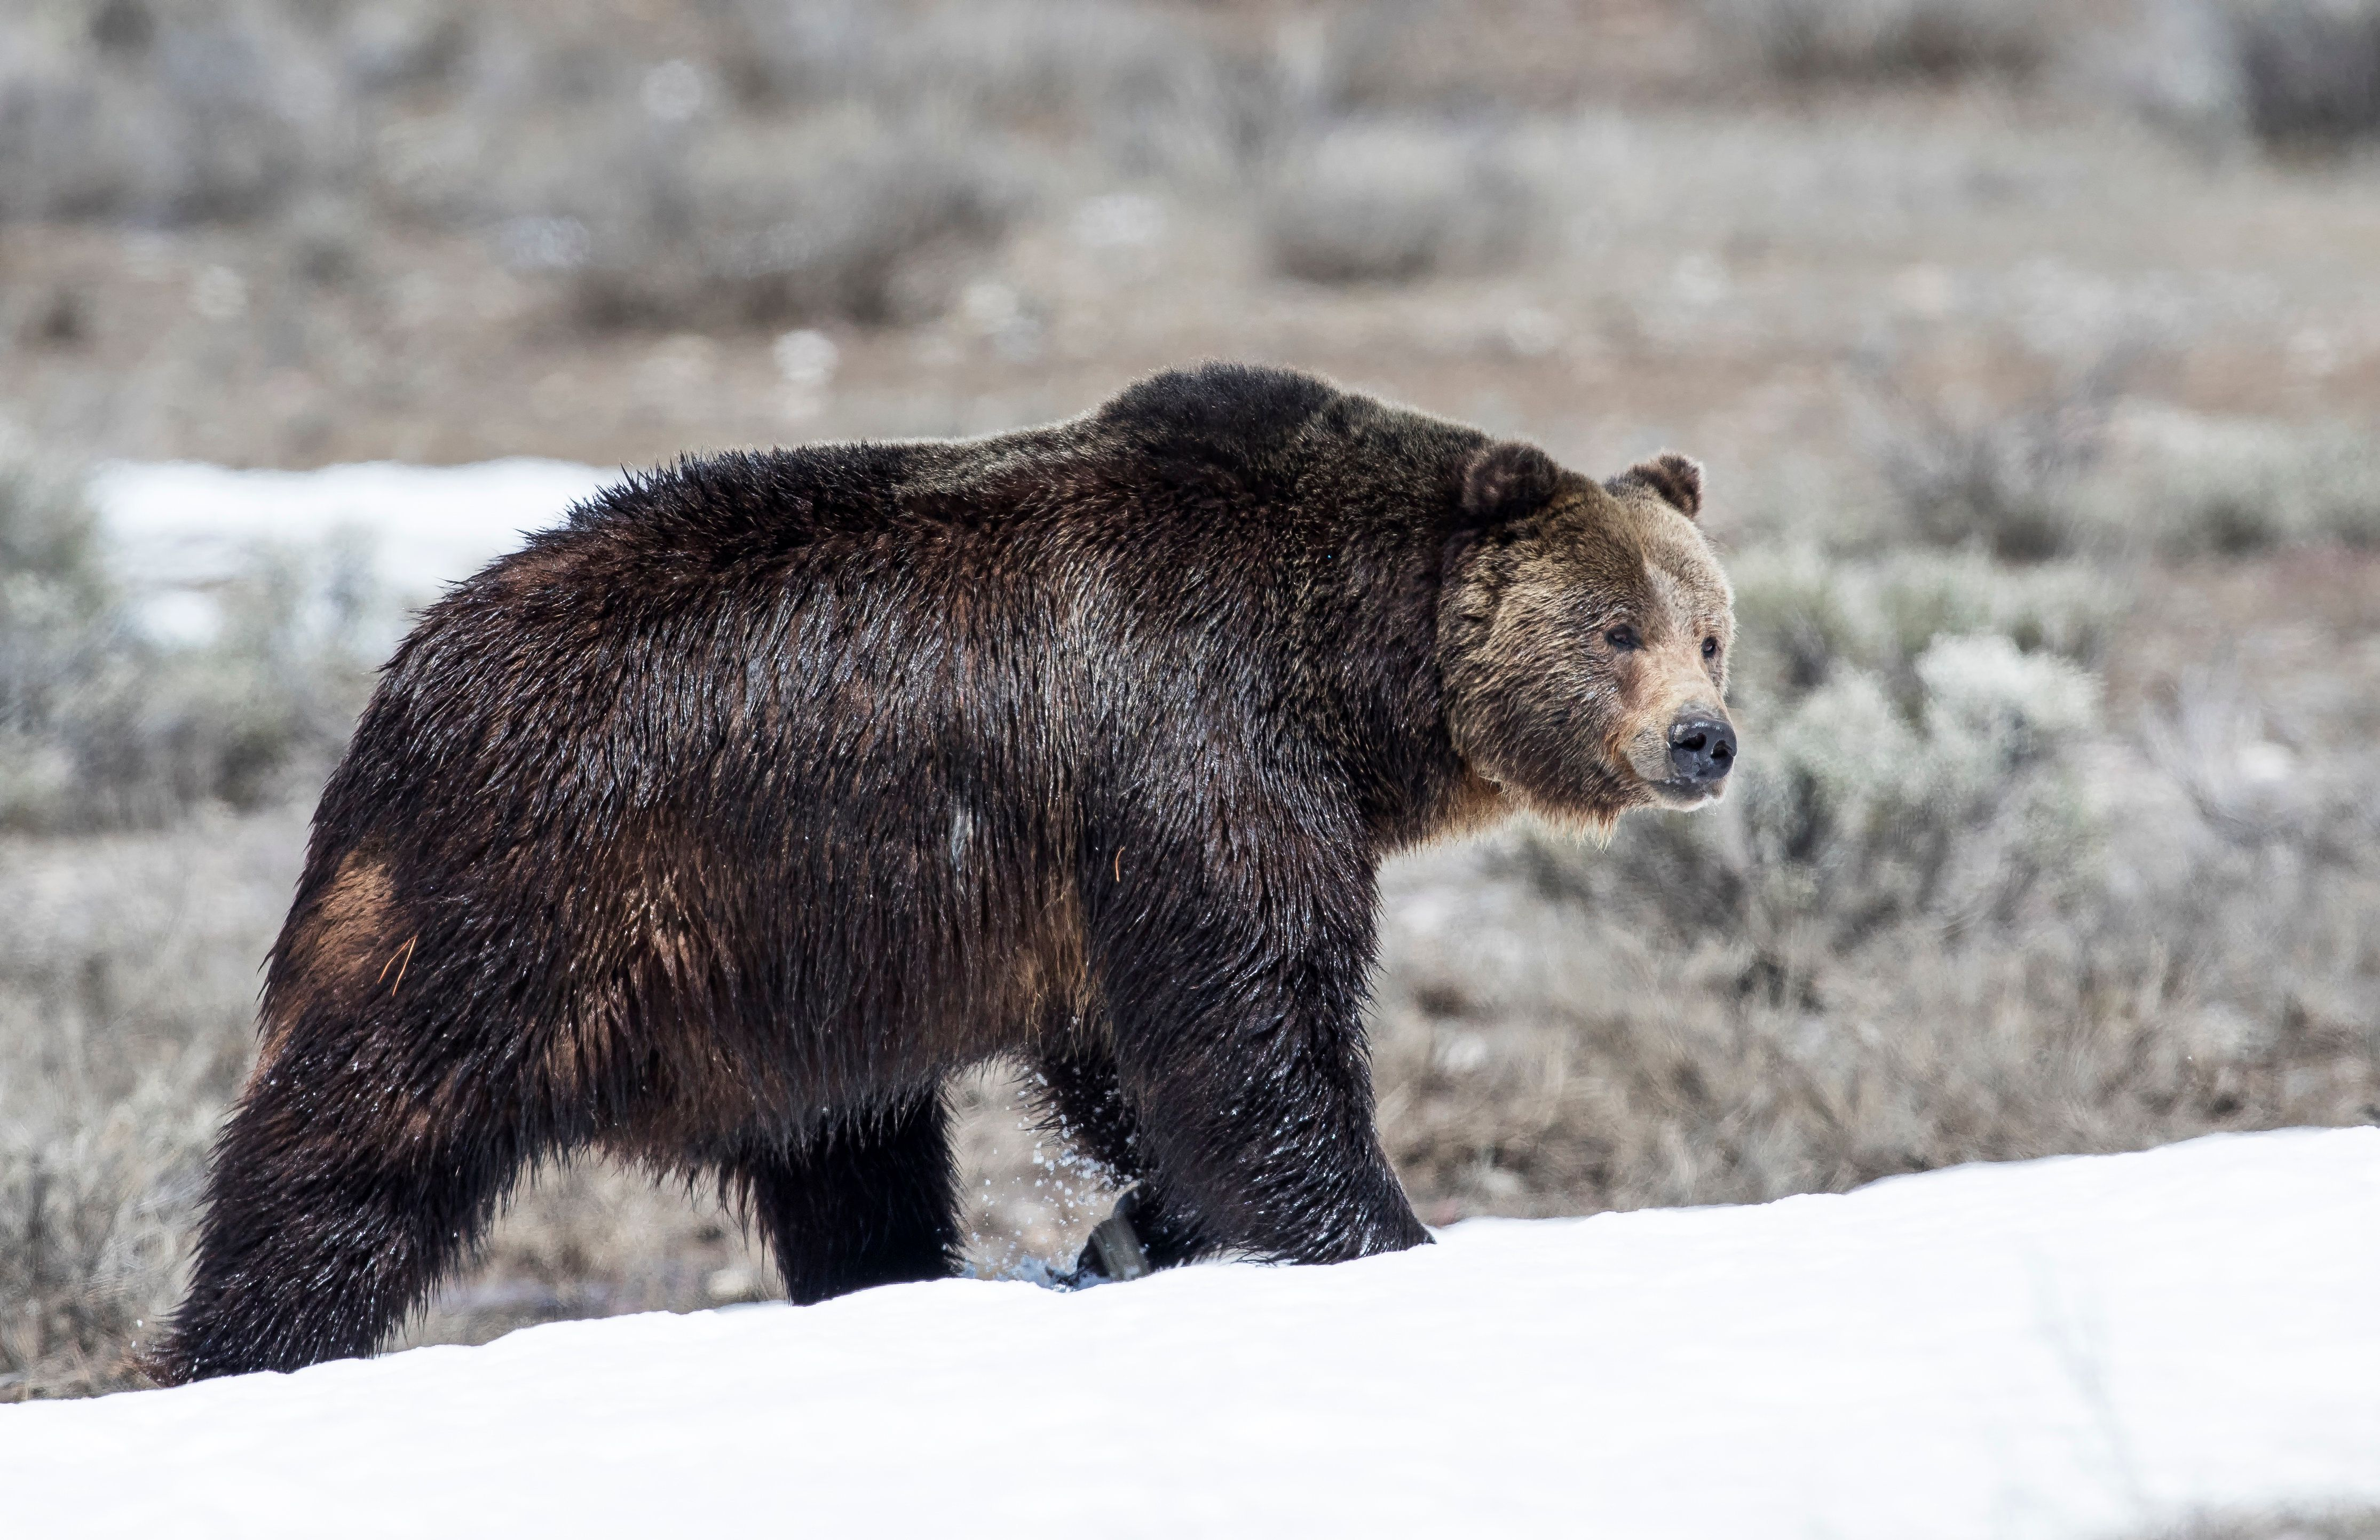 Grizzly bear on snow in early springtime